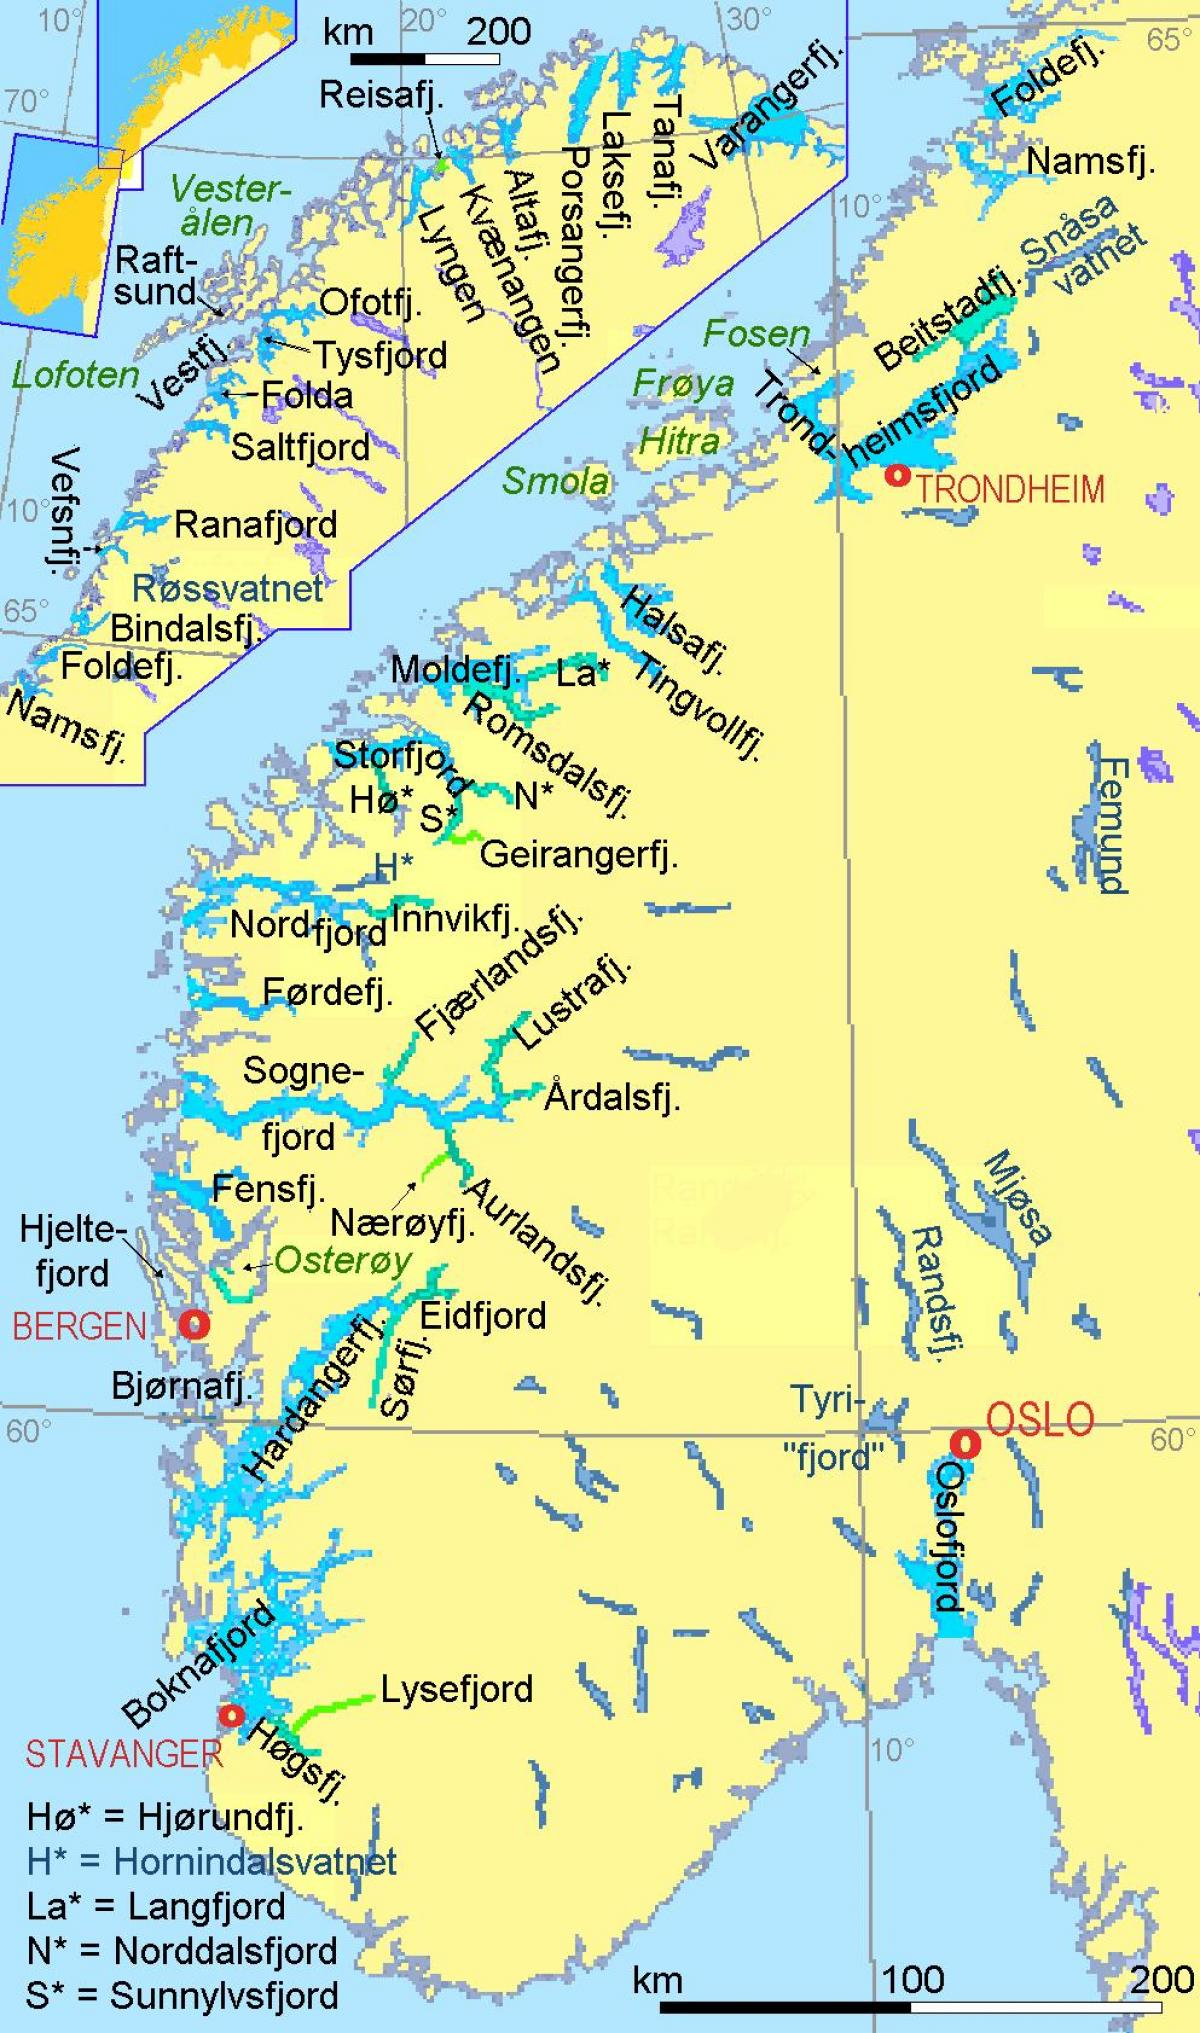 map of Norway showing fjords